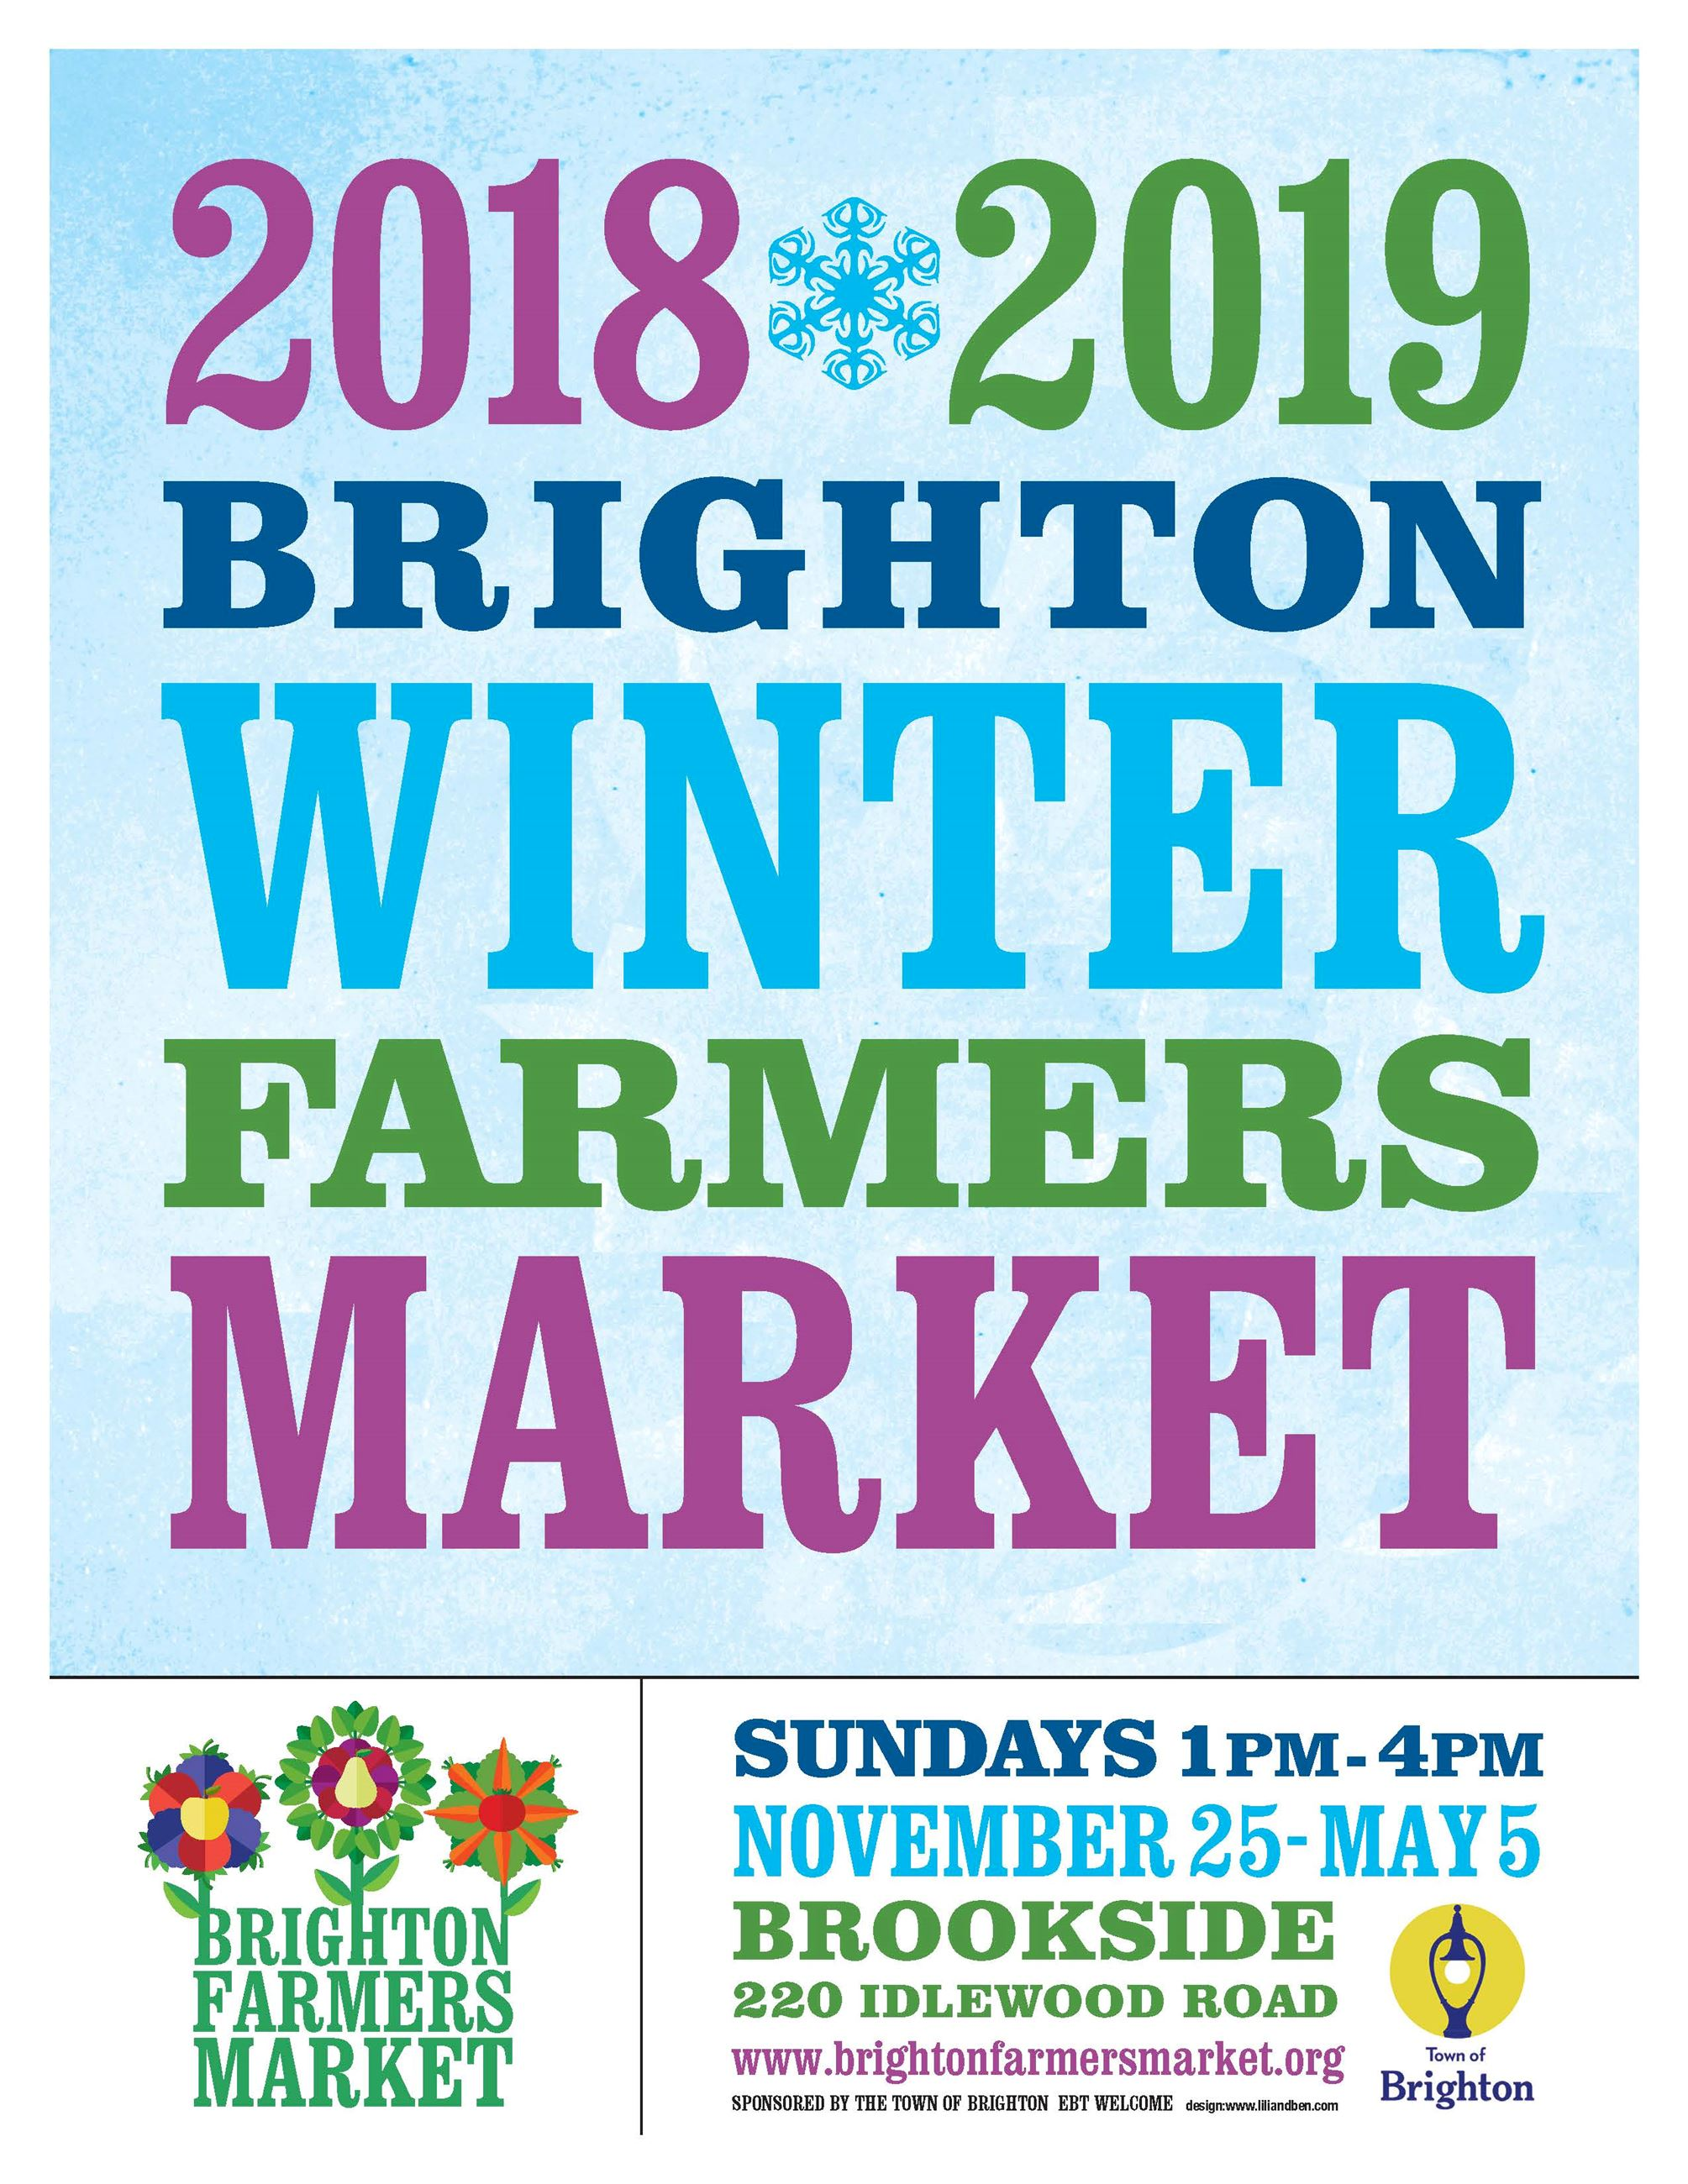 Brighton Winter Farm Mrkt 2018 poster